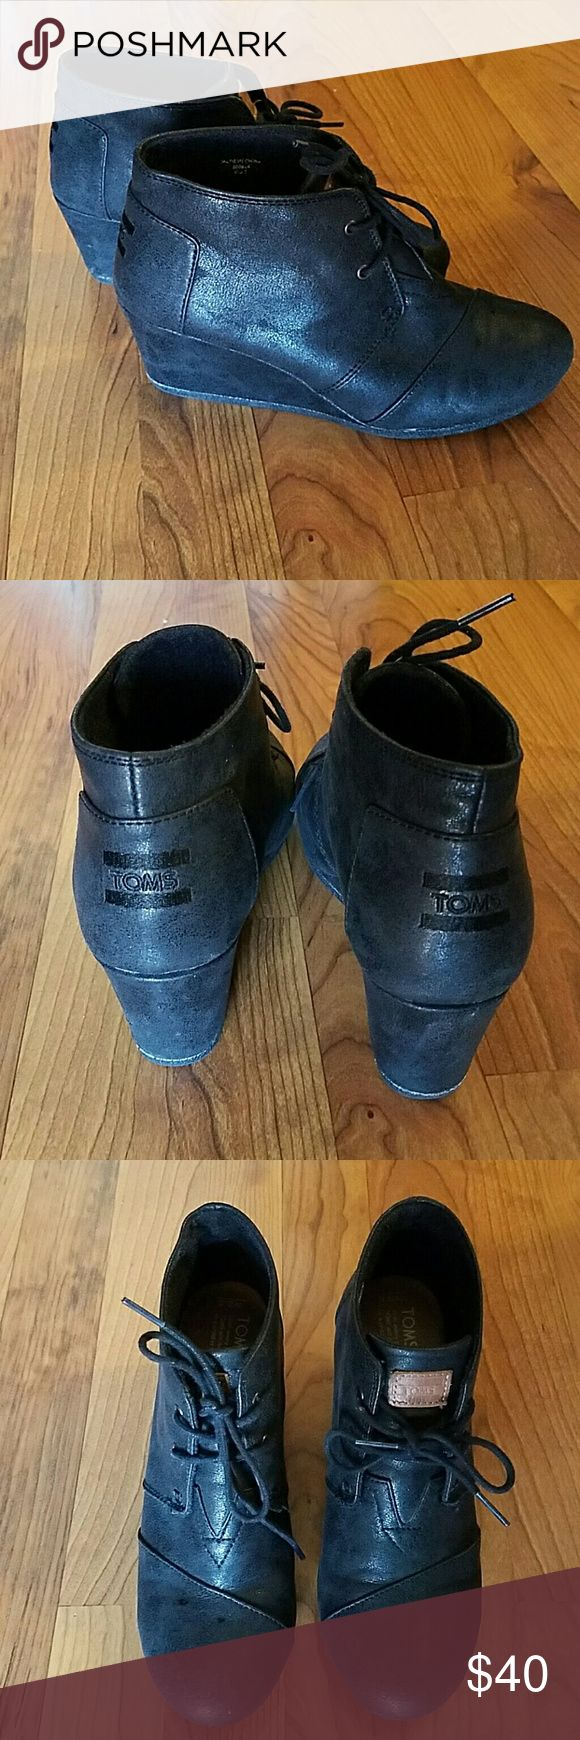 Toms Black Wedge Booties Size 8.5 Toms Black Wedge booties sz 8.5. Solid black, lace up front, toms logo on back and front flap. Super cute! TOMS Shoes Ankle Boots & Booties